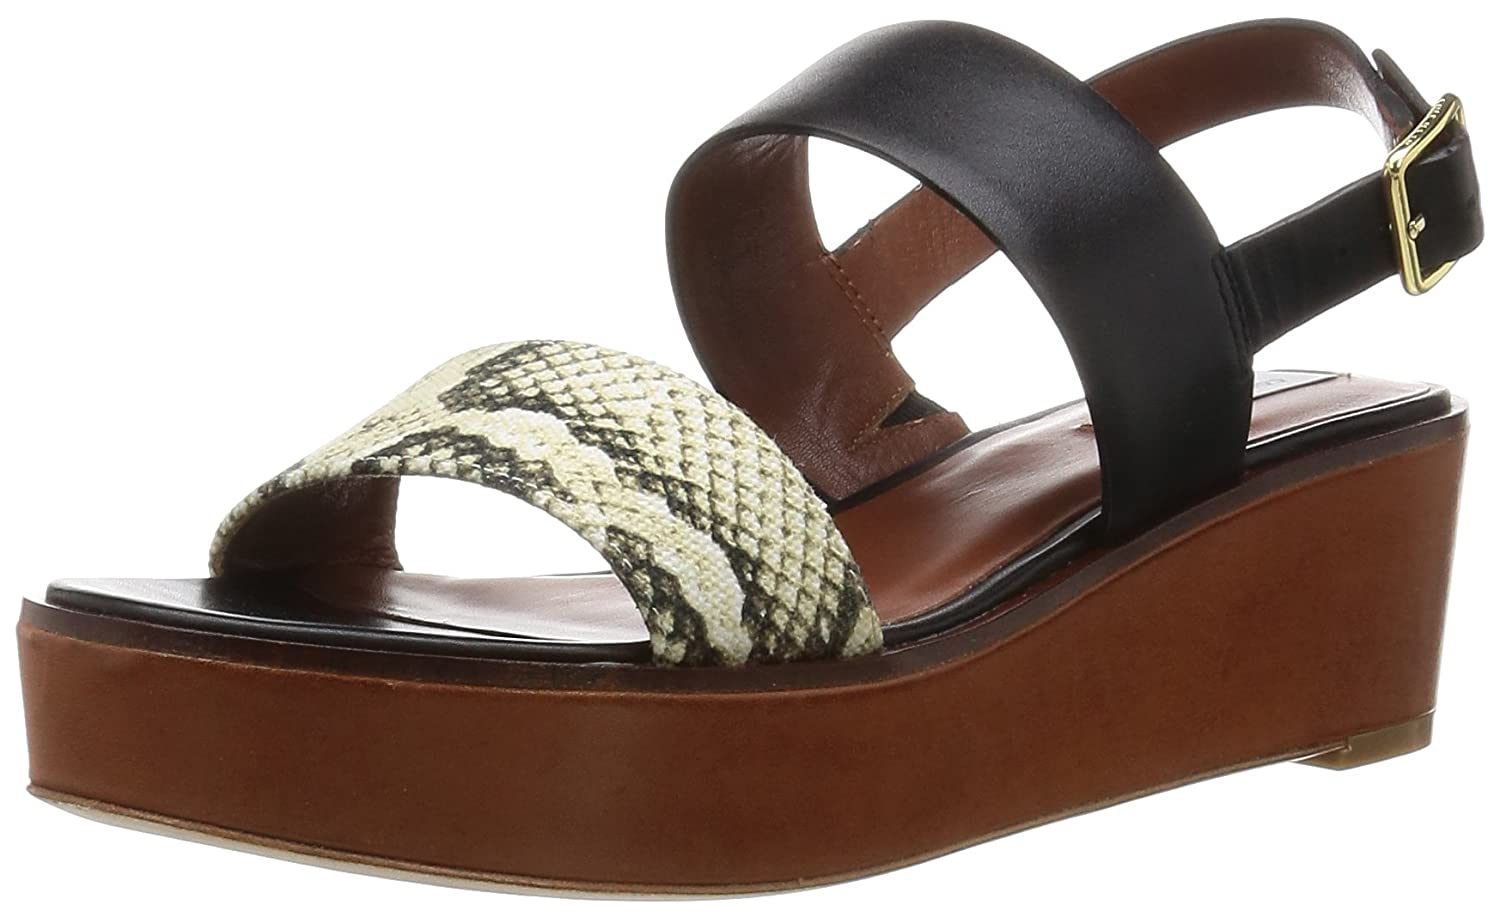 Cole Haan Women's Cambon Platform Dress Sandal B01A8HLOAY 9 B(M) US|Black Leather/Roccia Snake Canvas/Acorn Suede